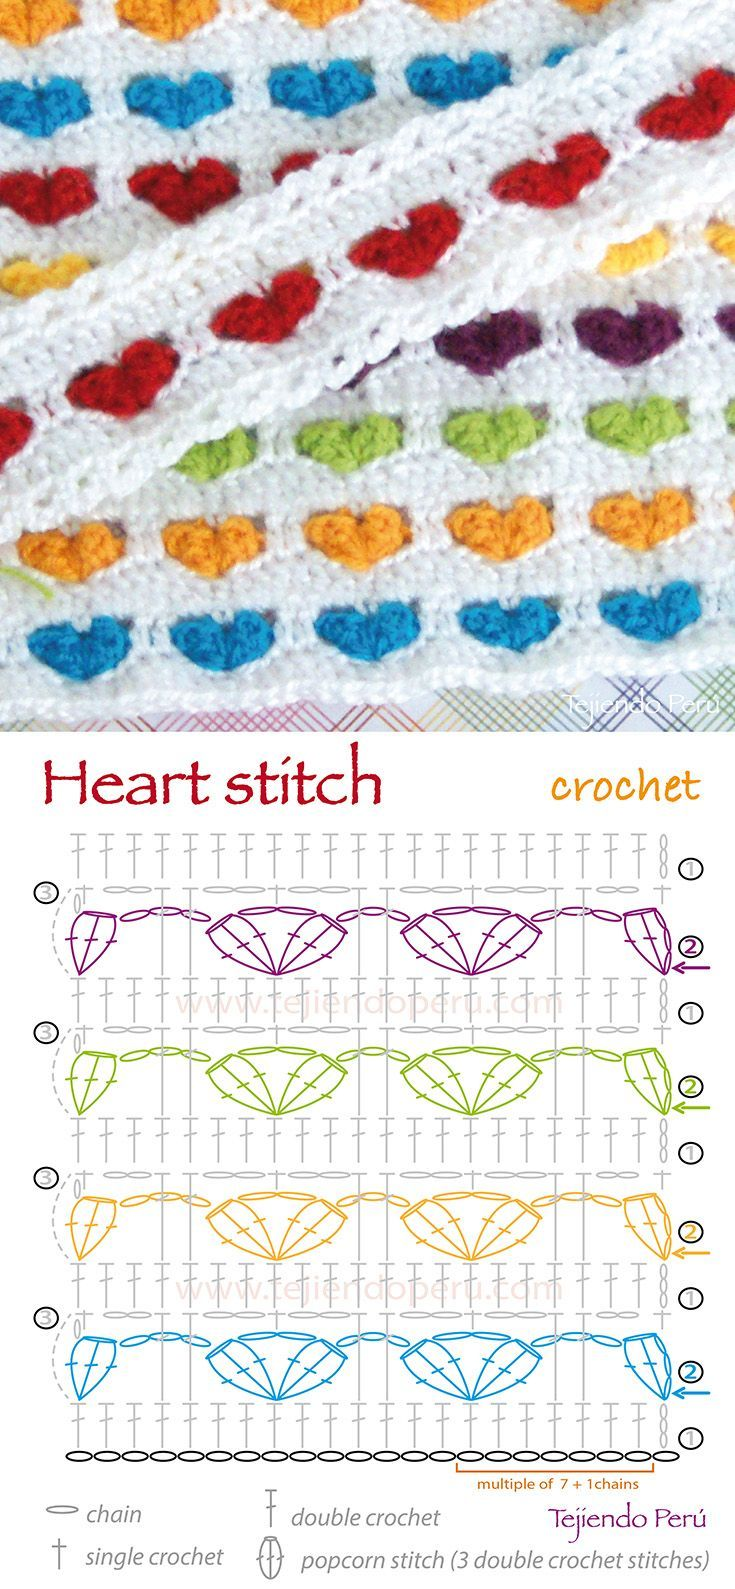 Crochet heart stitch pattern (diagram or chart)!!:                                                                                                                                                      More